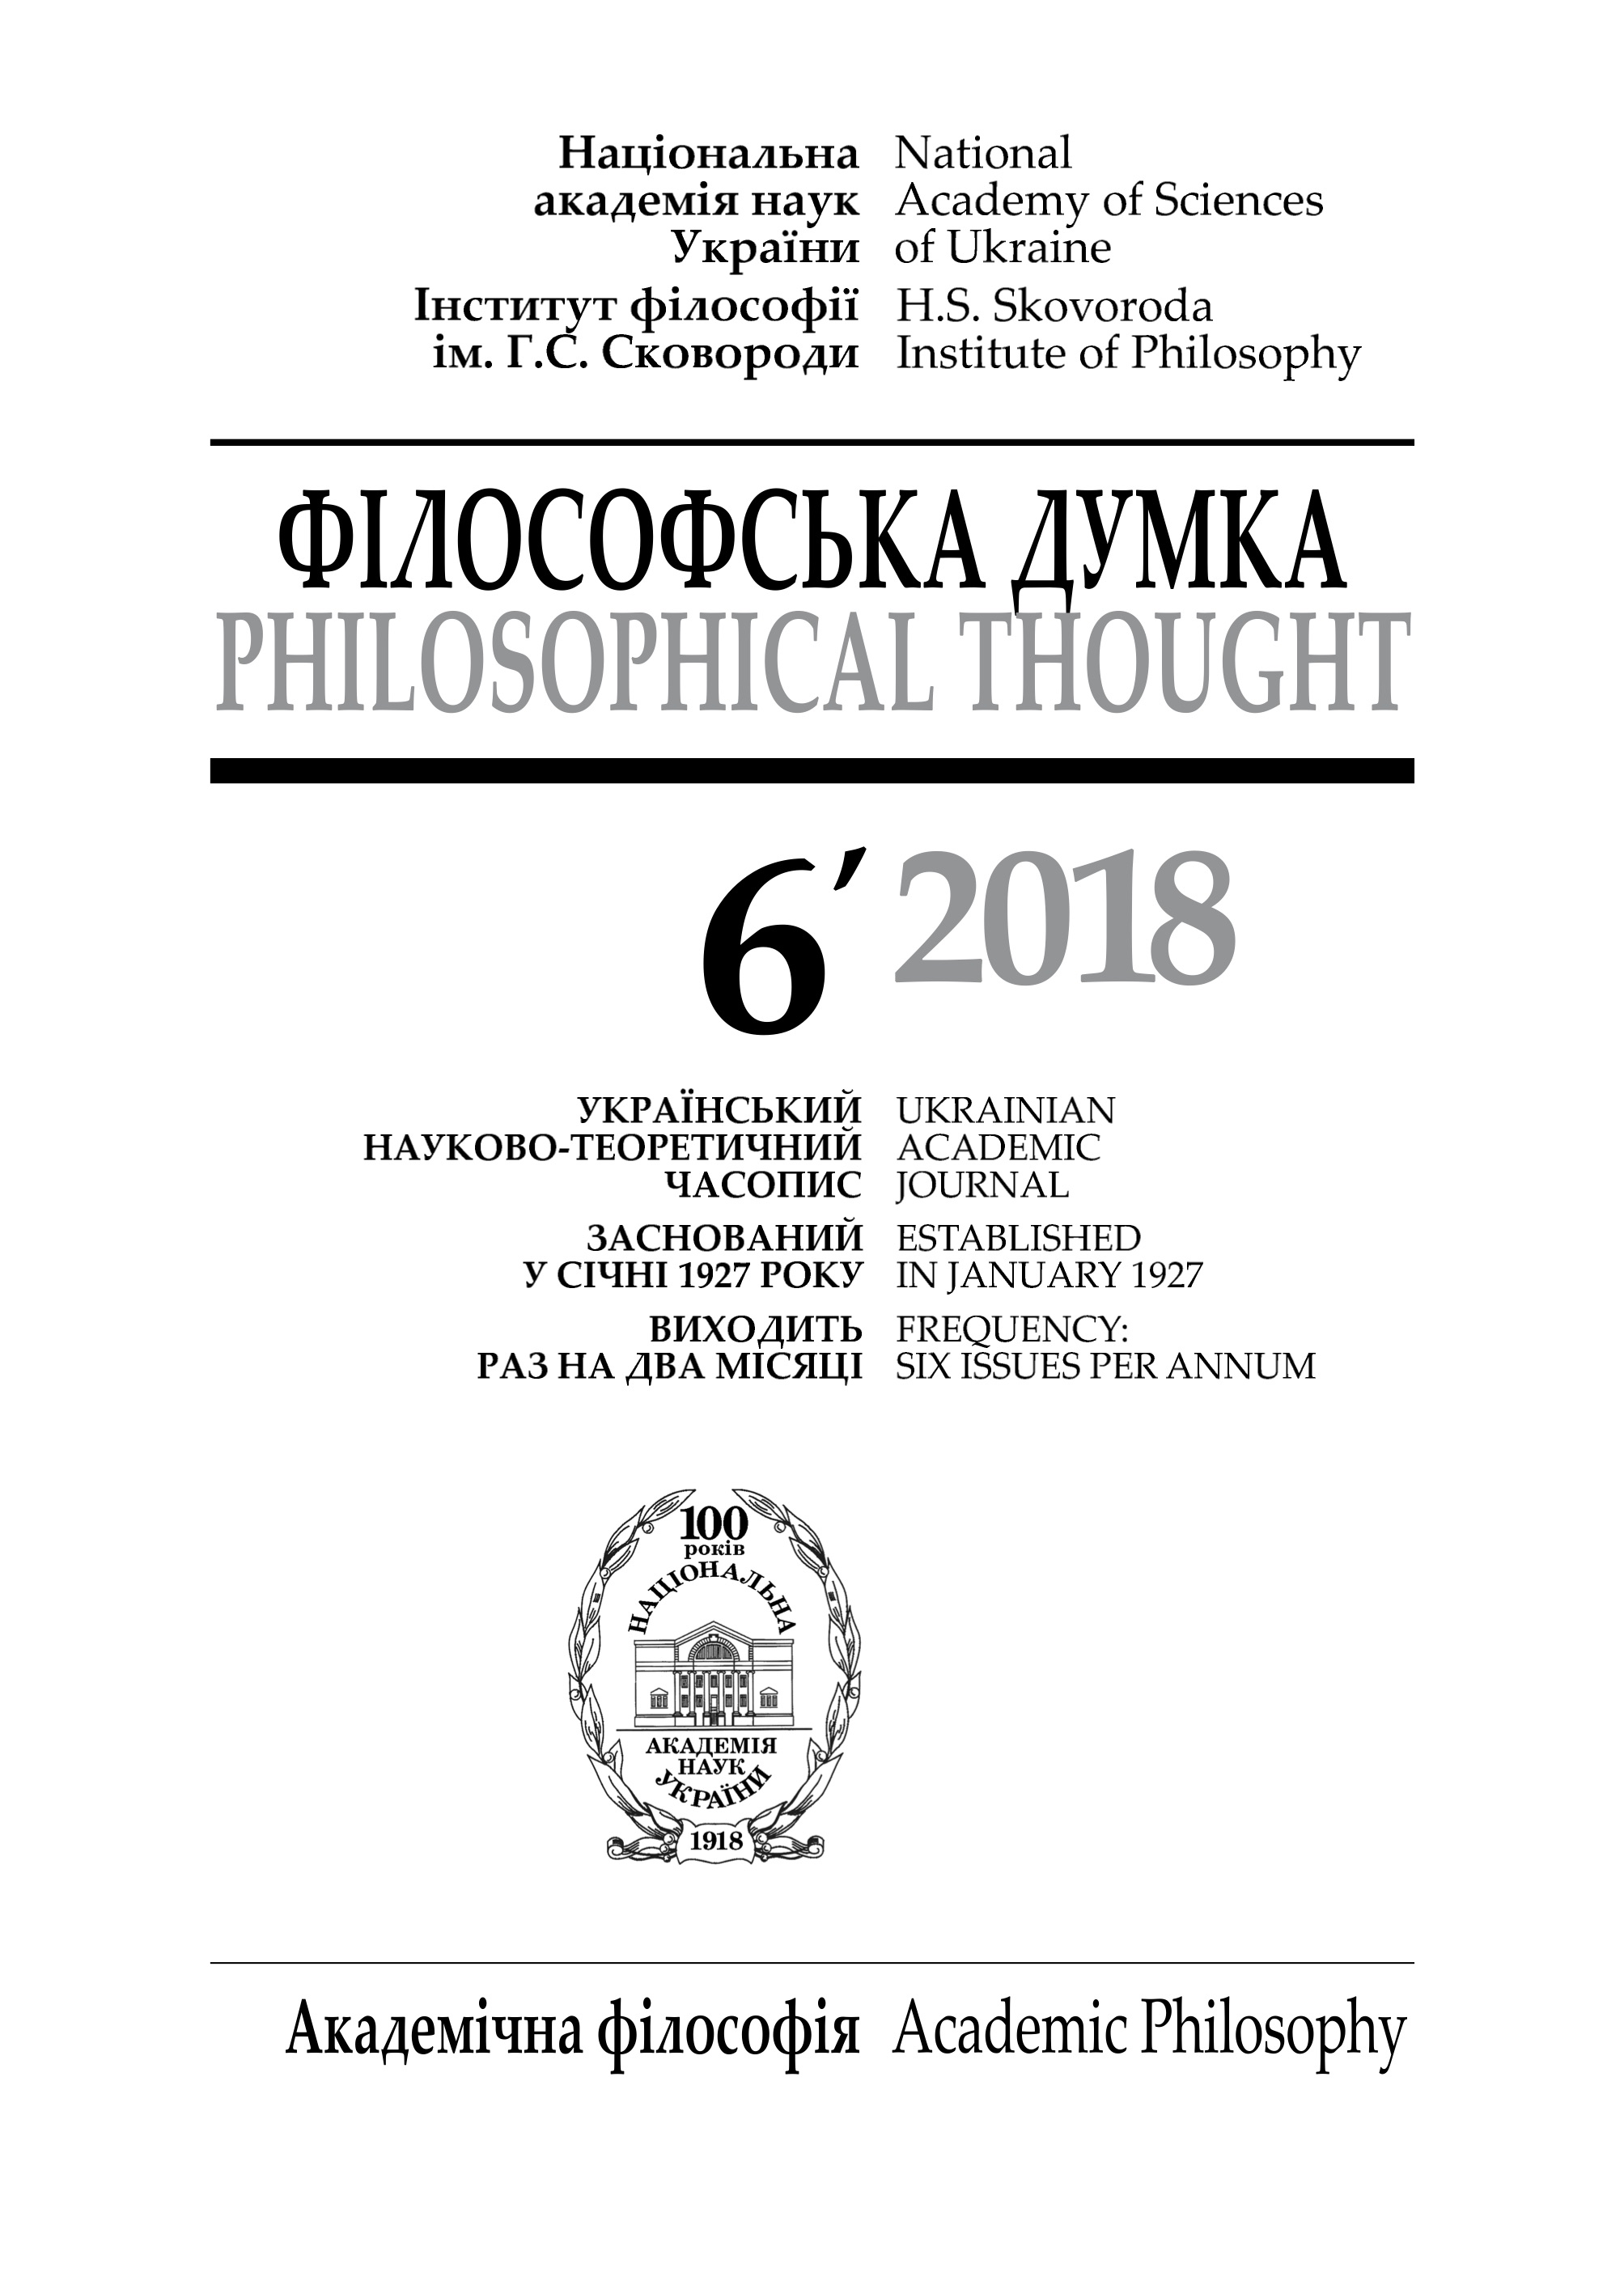 View No. 6 (2018): Philosophical thought